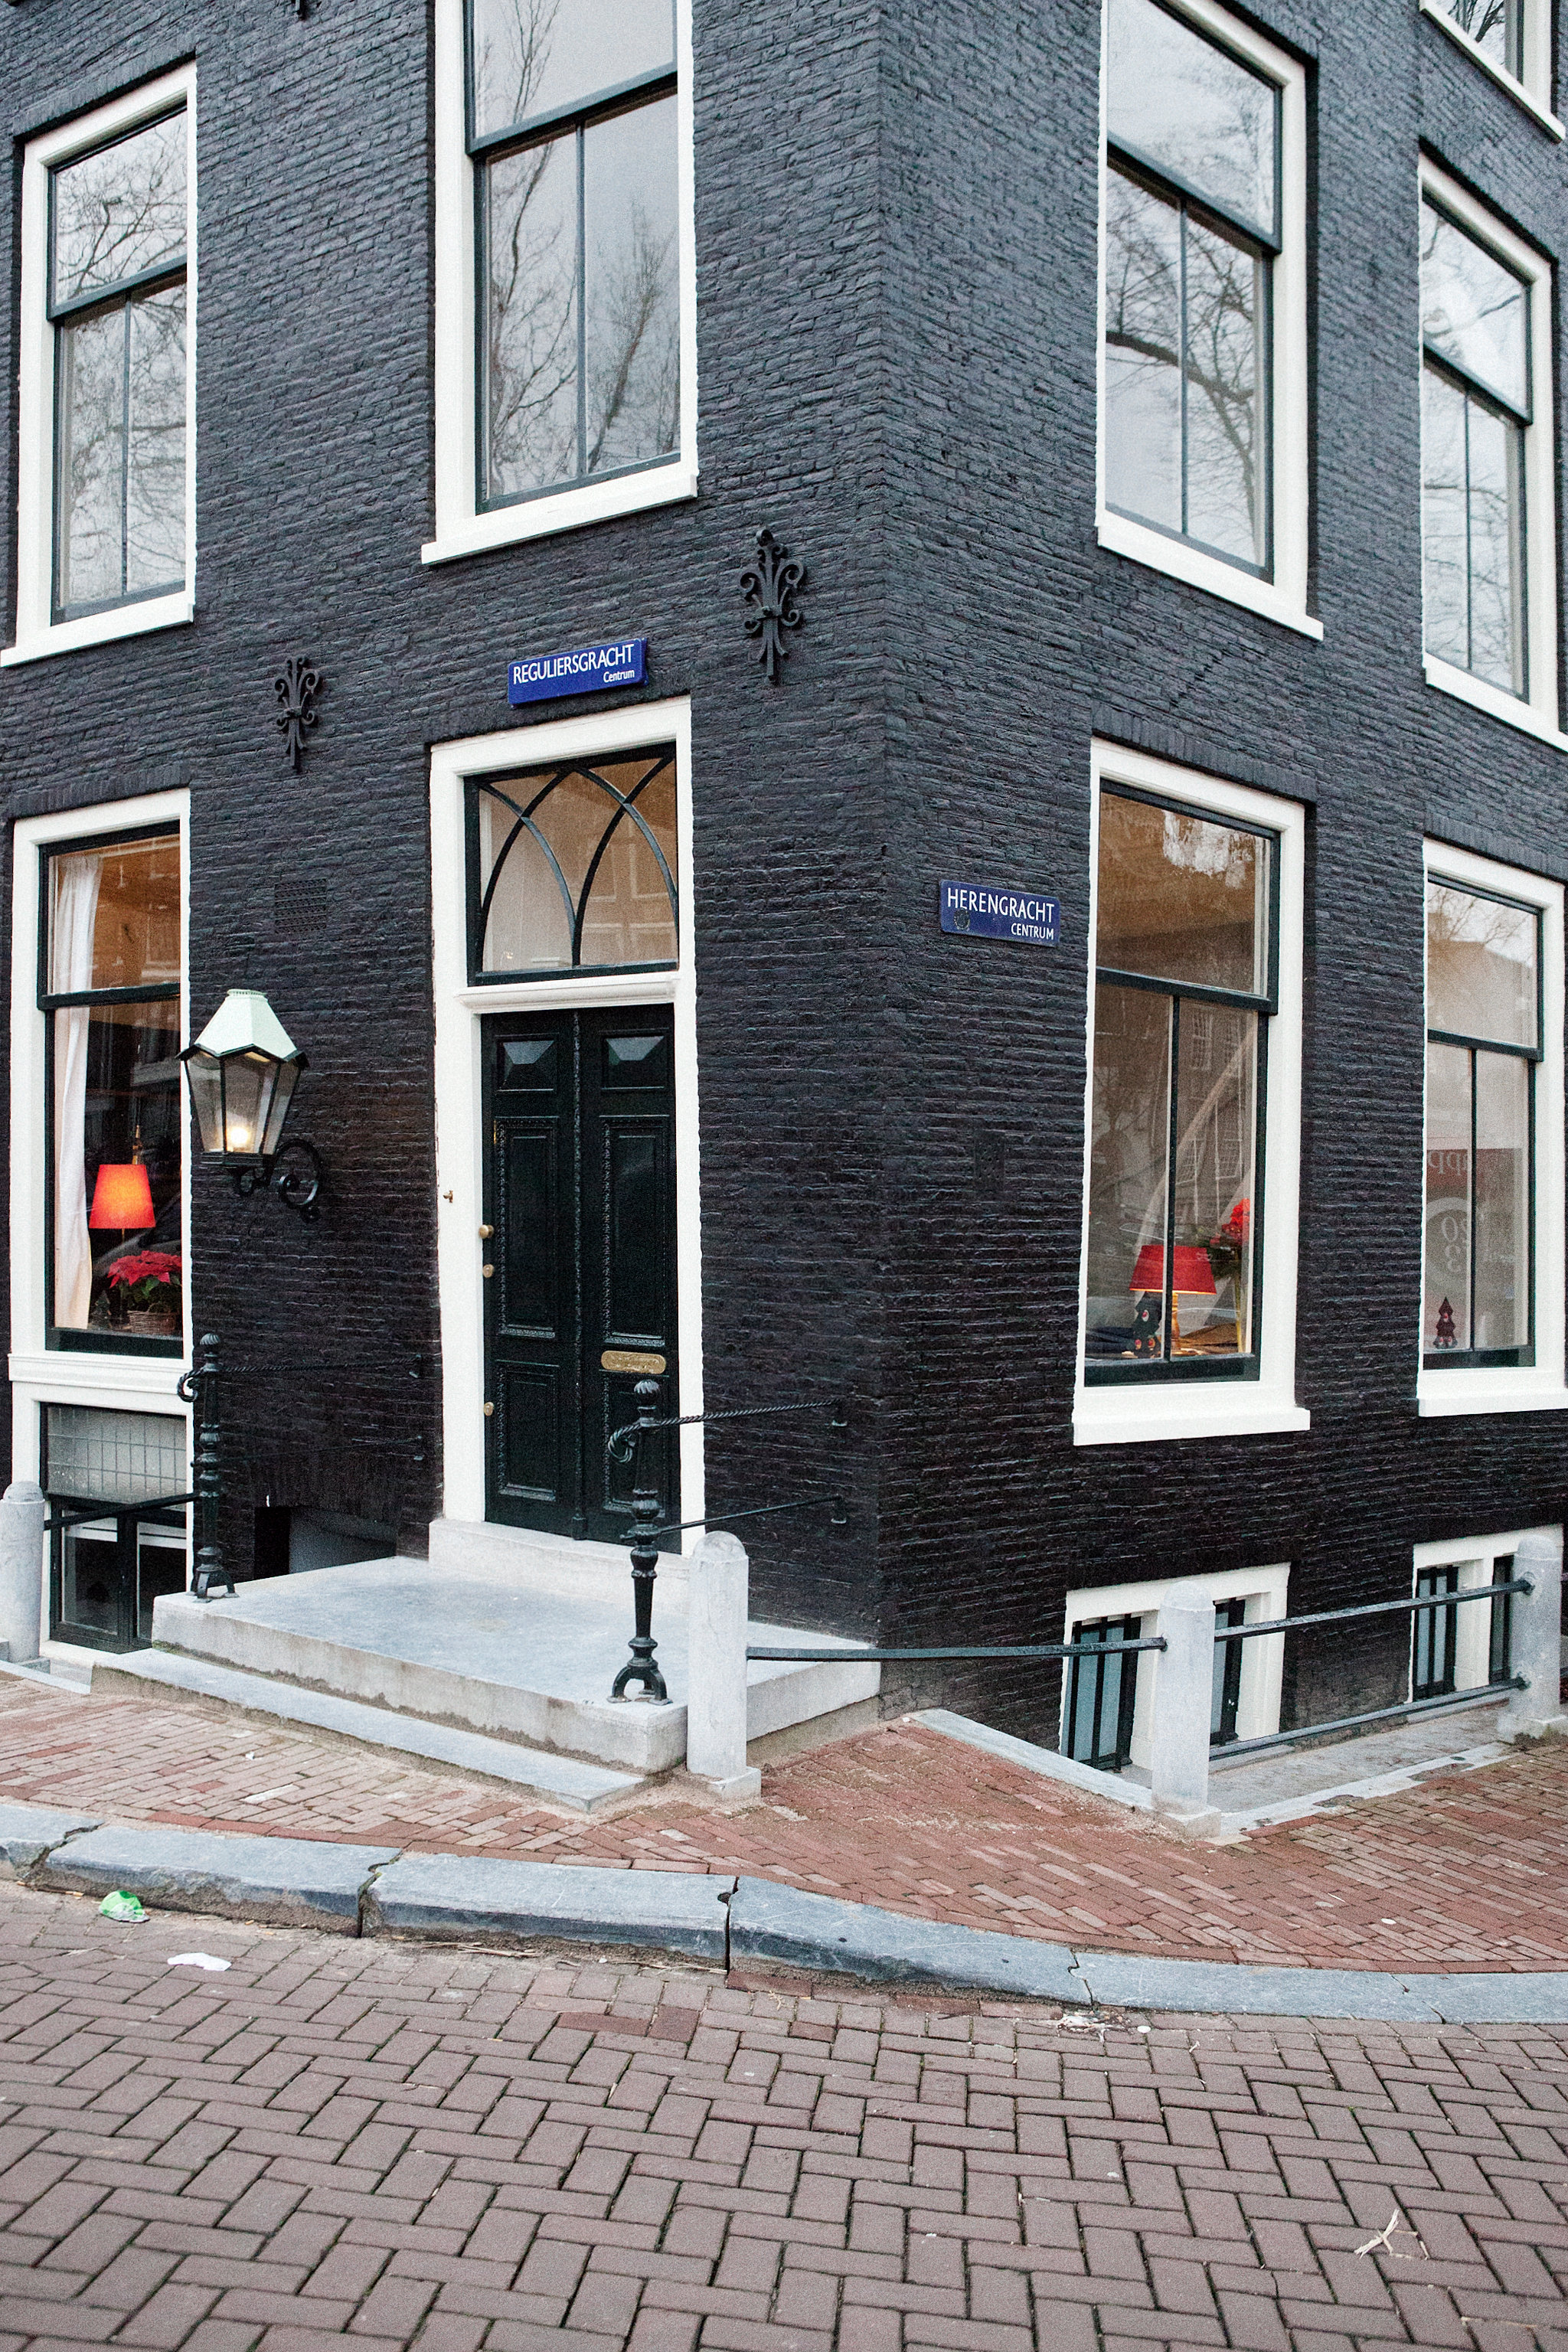 The vanguard amsterdam boutique bed and breakfast the for Amsterdam b b centro